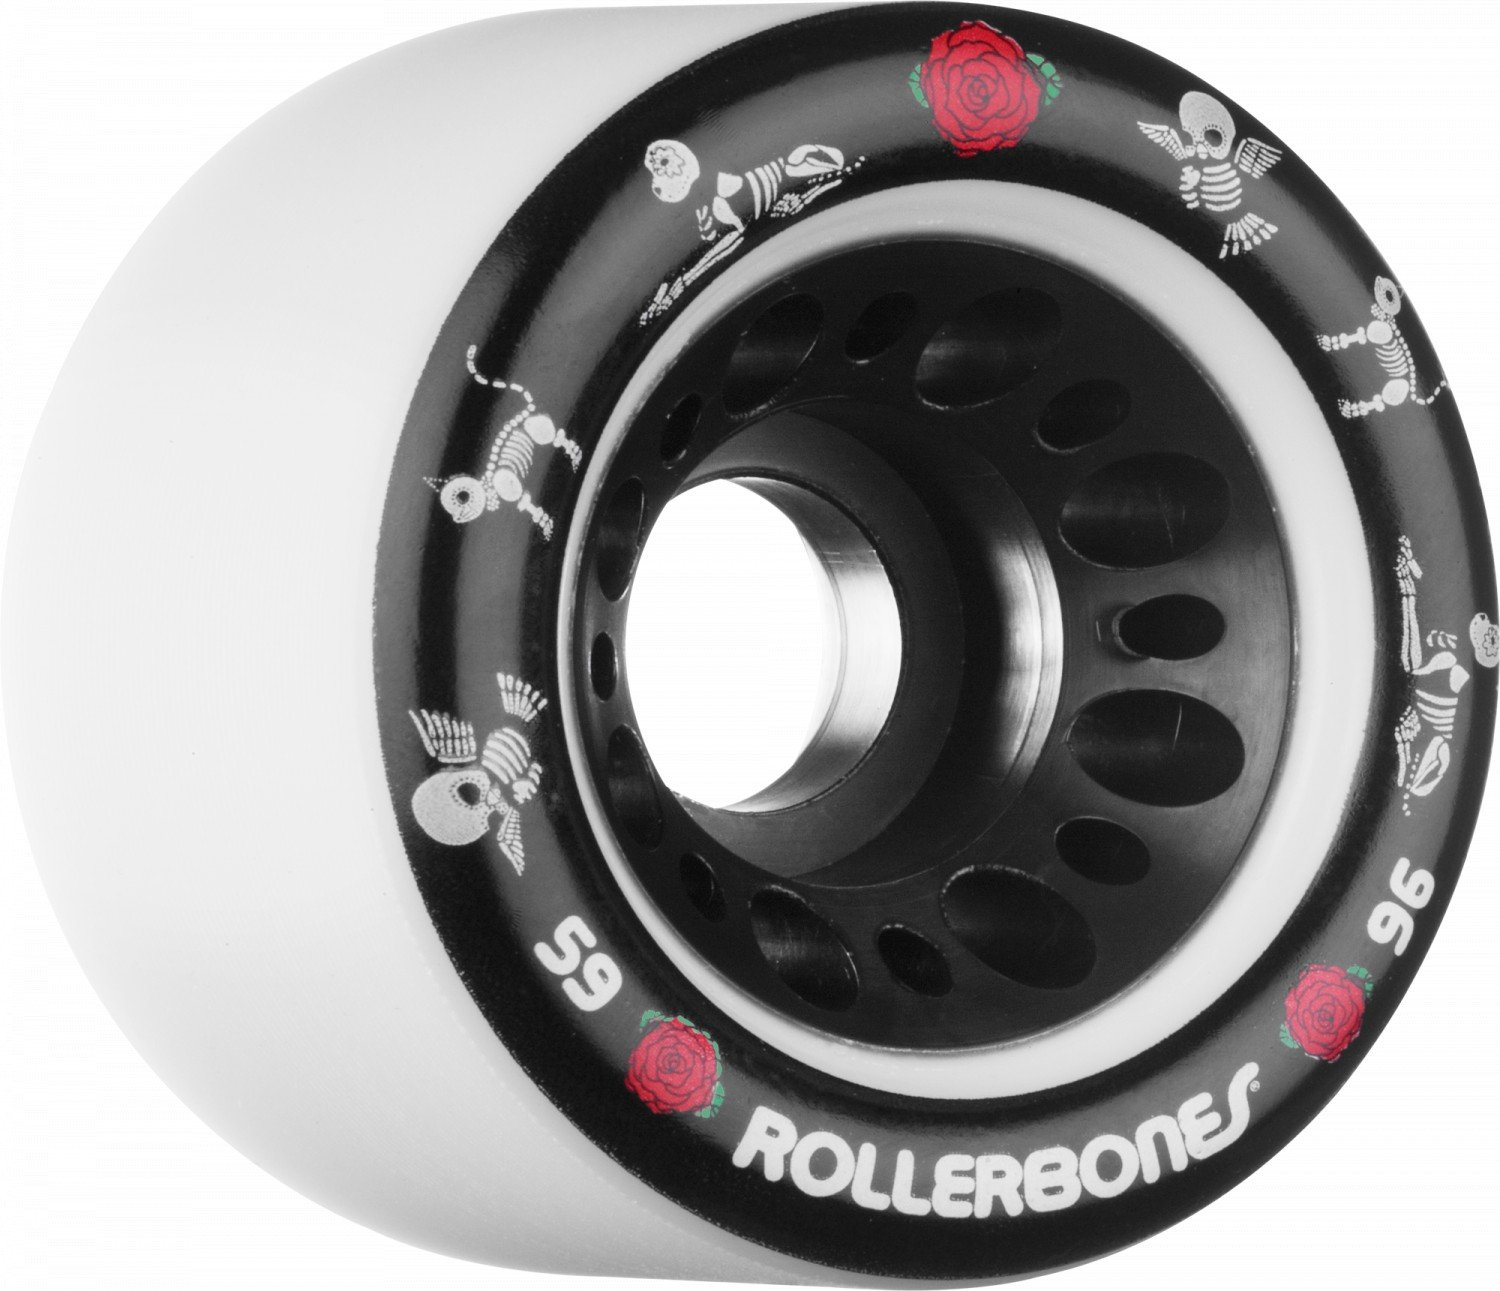 RollerBones Day of The Dead Pet Derby Skating Wheels White 96A